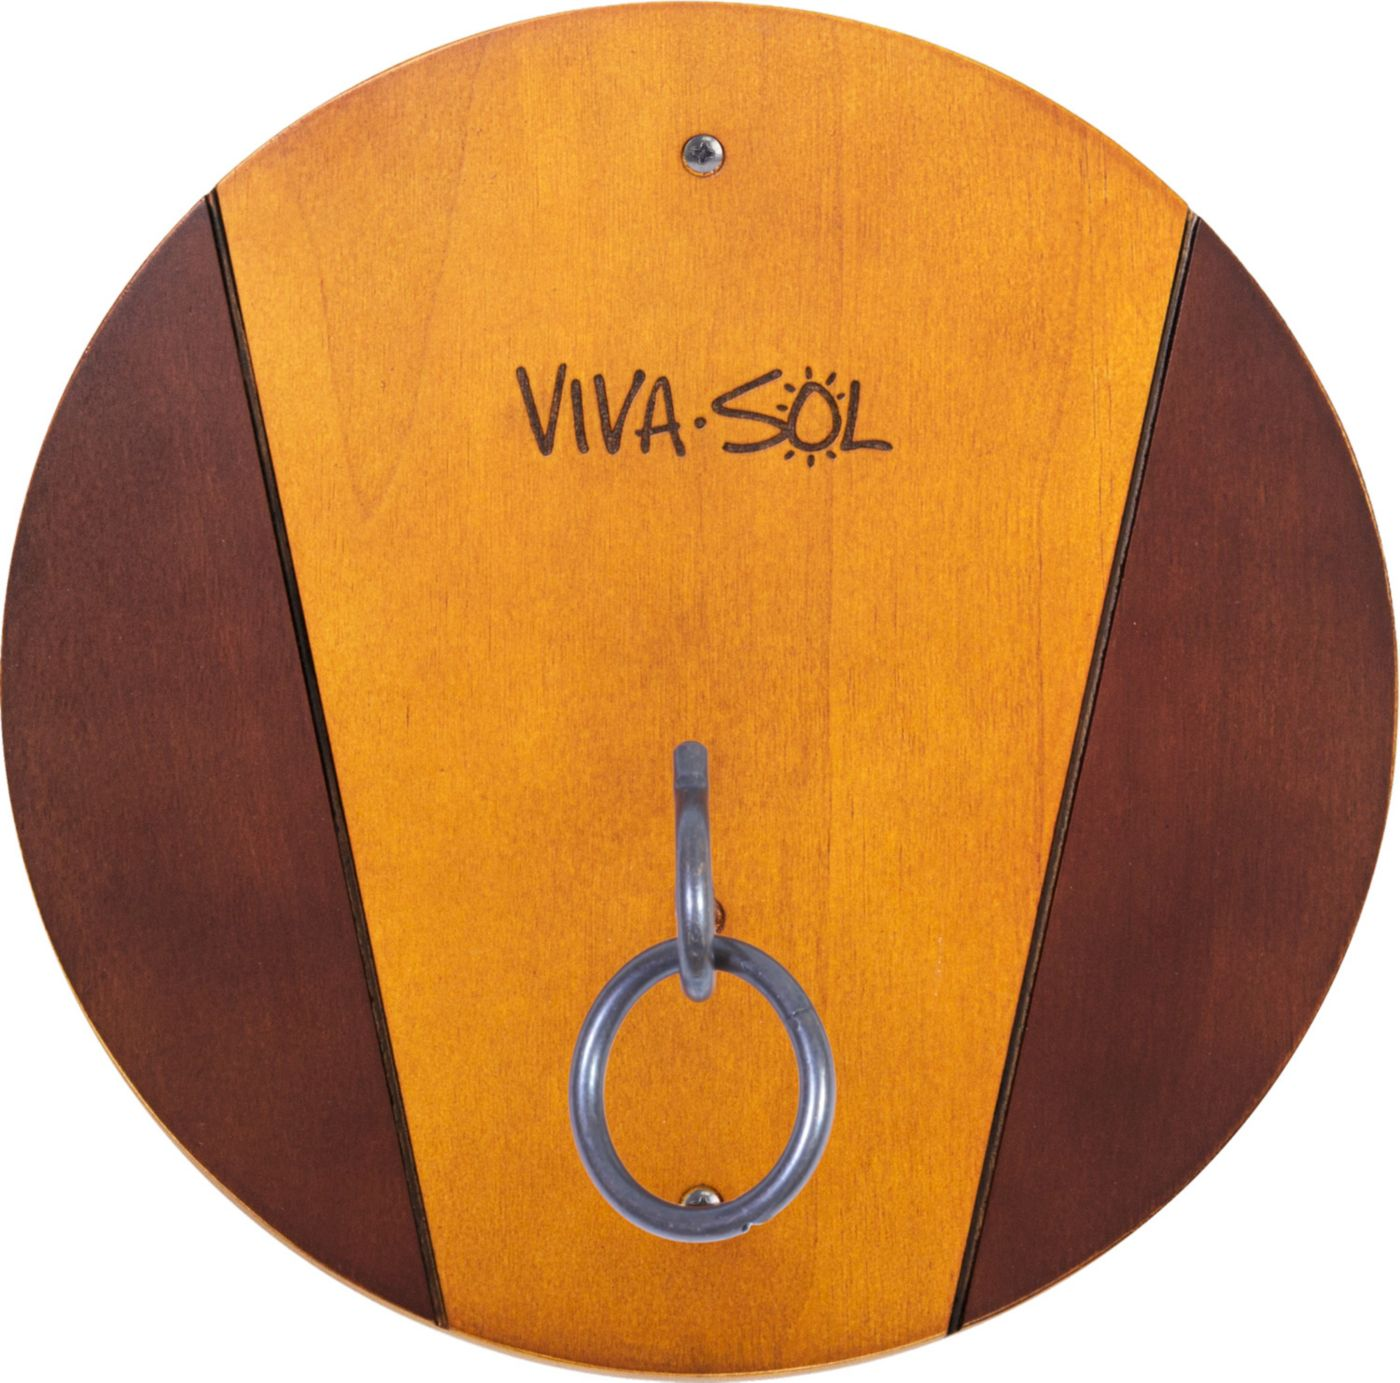 Viva Sol Hook and Ring Round Game Set